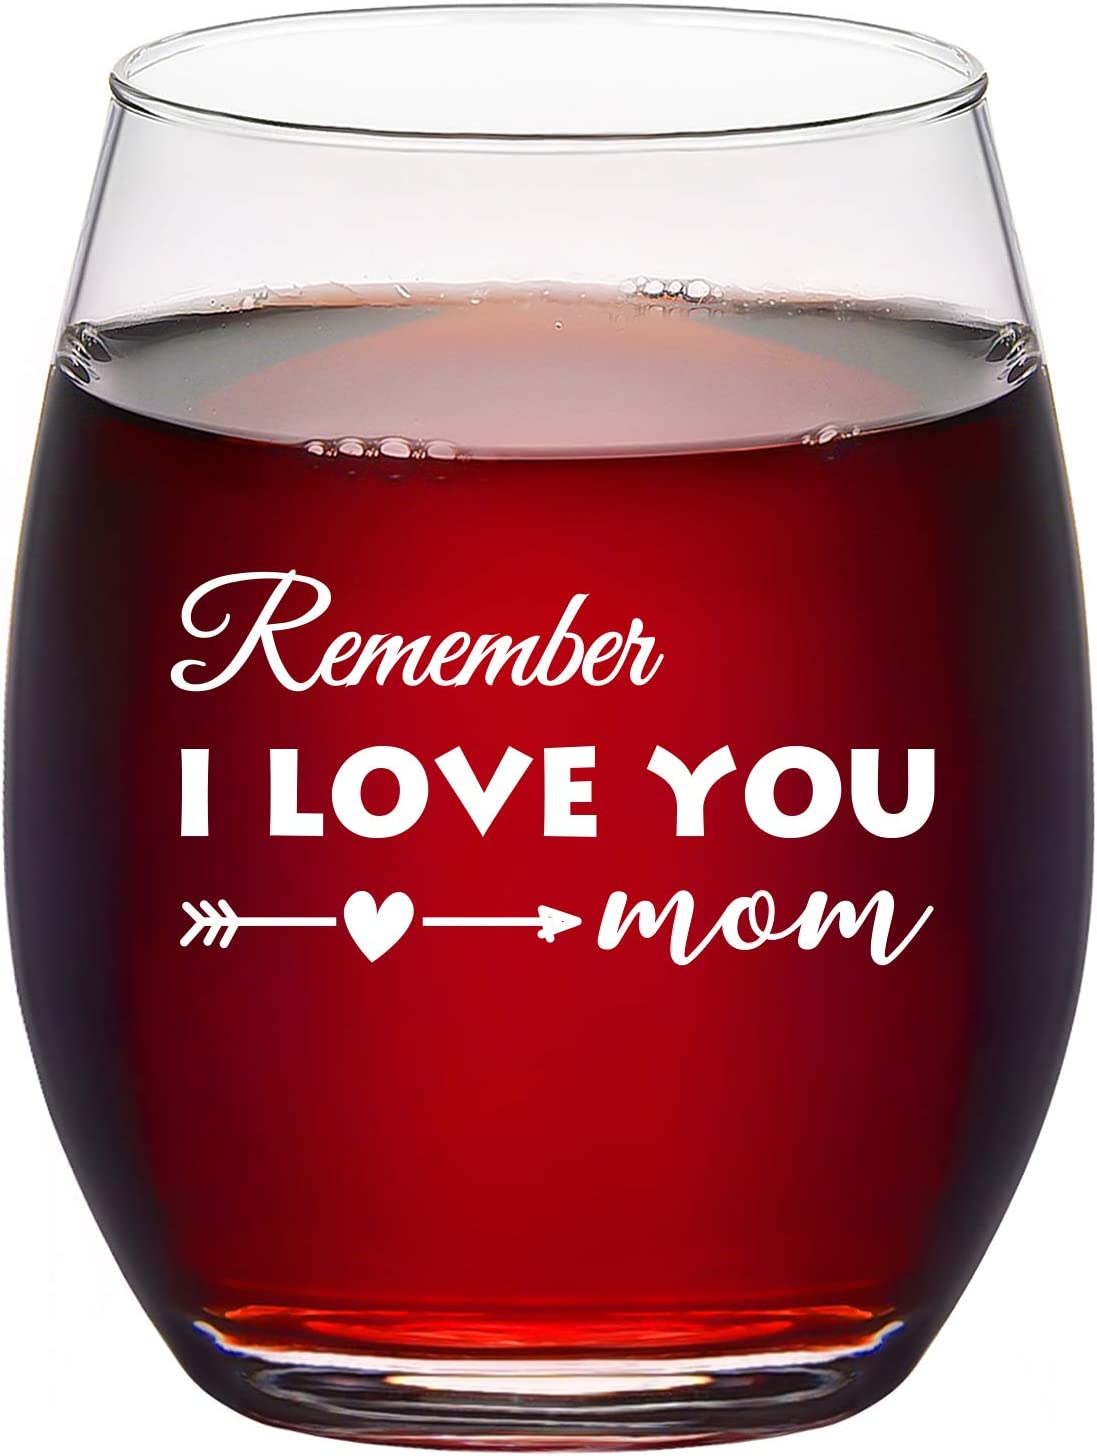 Mom Gifts - Remember I Love You Mom Wine Glass, Mom Stemless Wine Glass 15Oz - Christmas Gifts, Mother's Day Gifts, Birthday Gifts for Women, Mom, Mother, Wife, New Mom